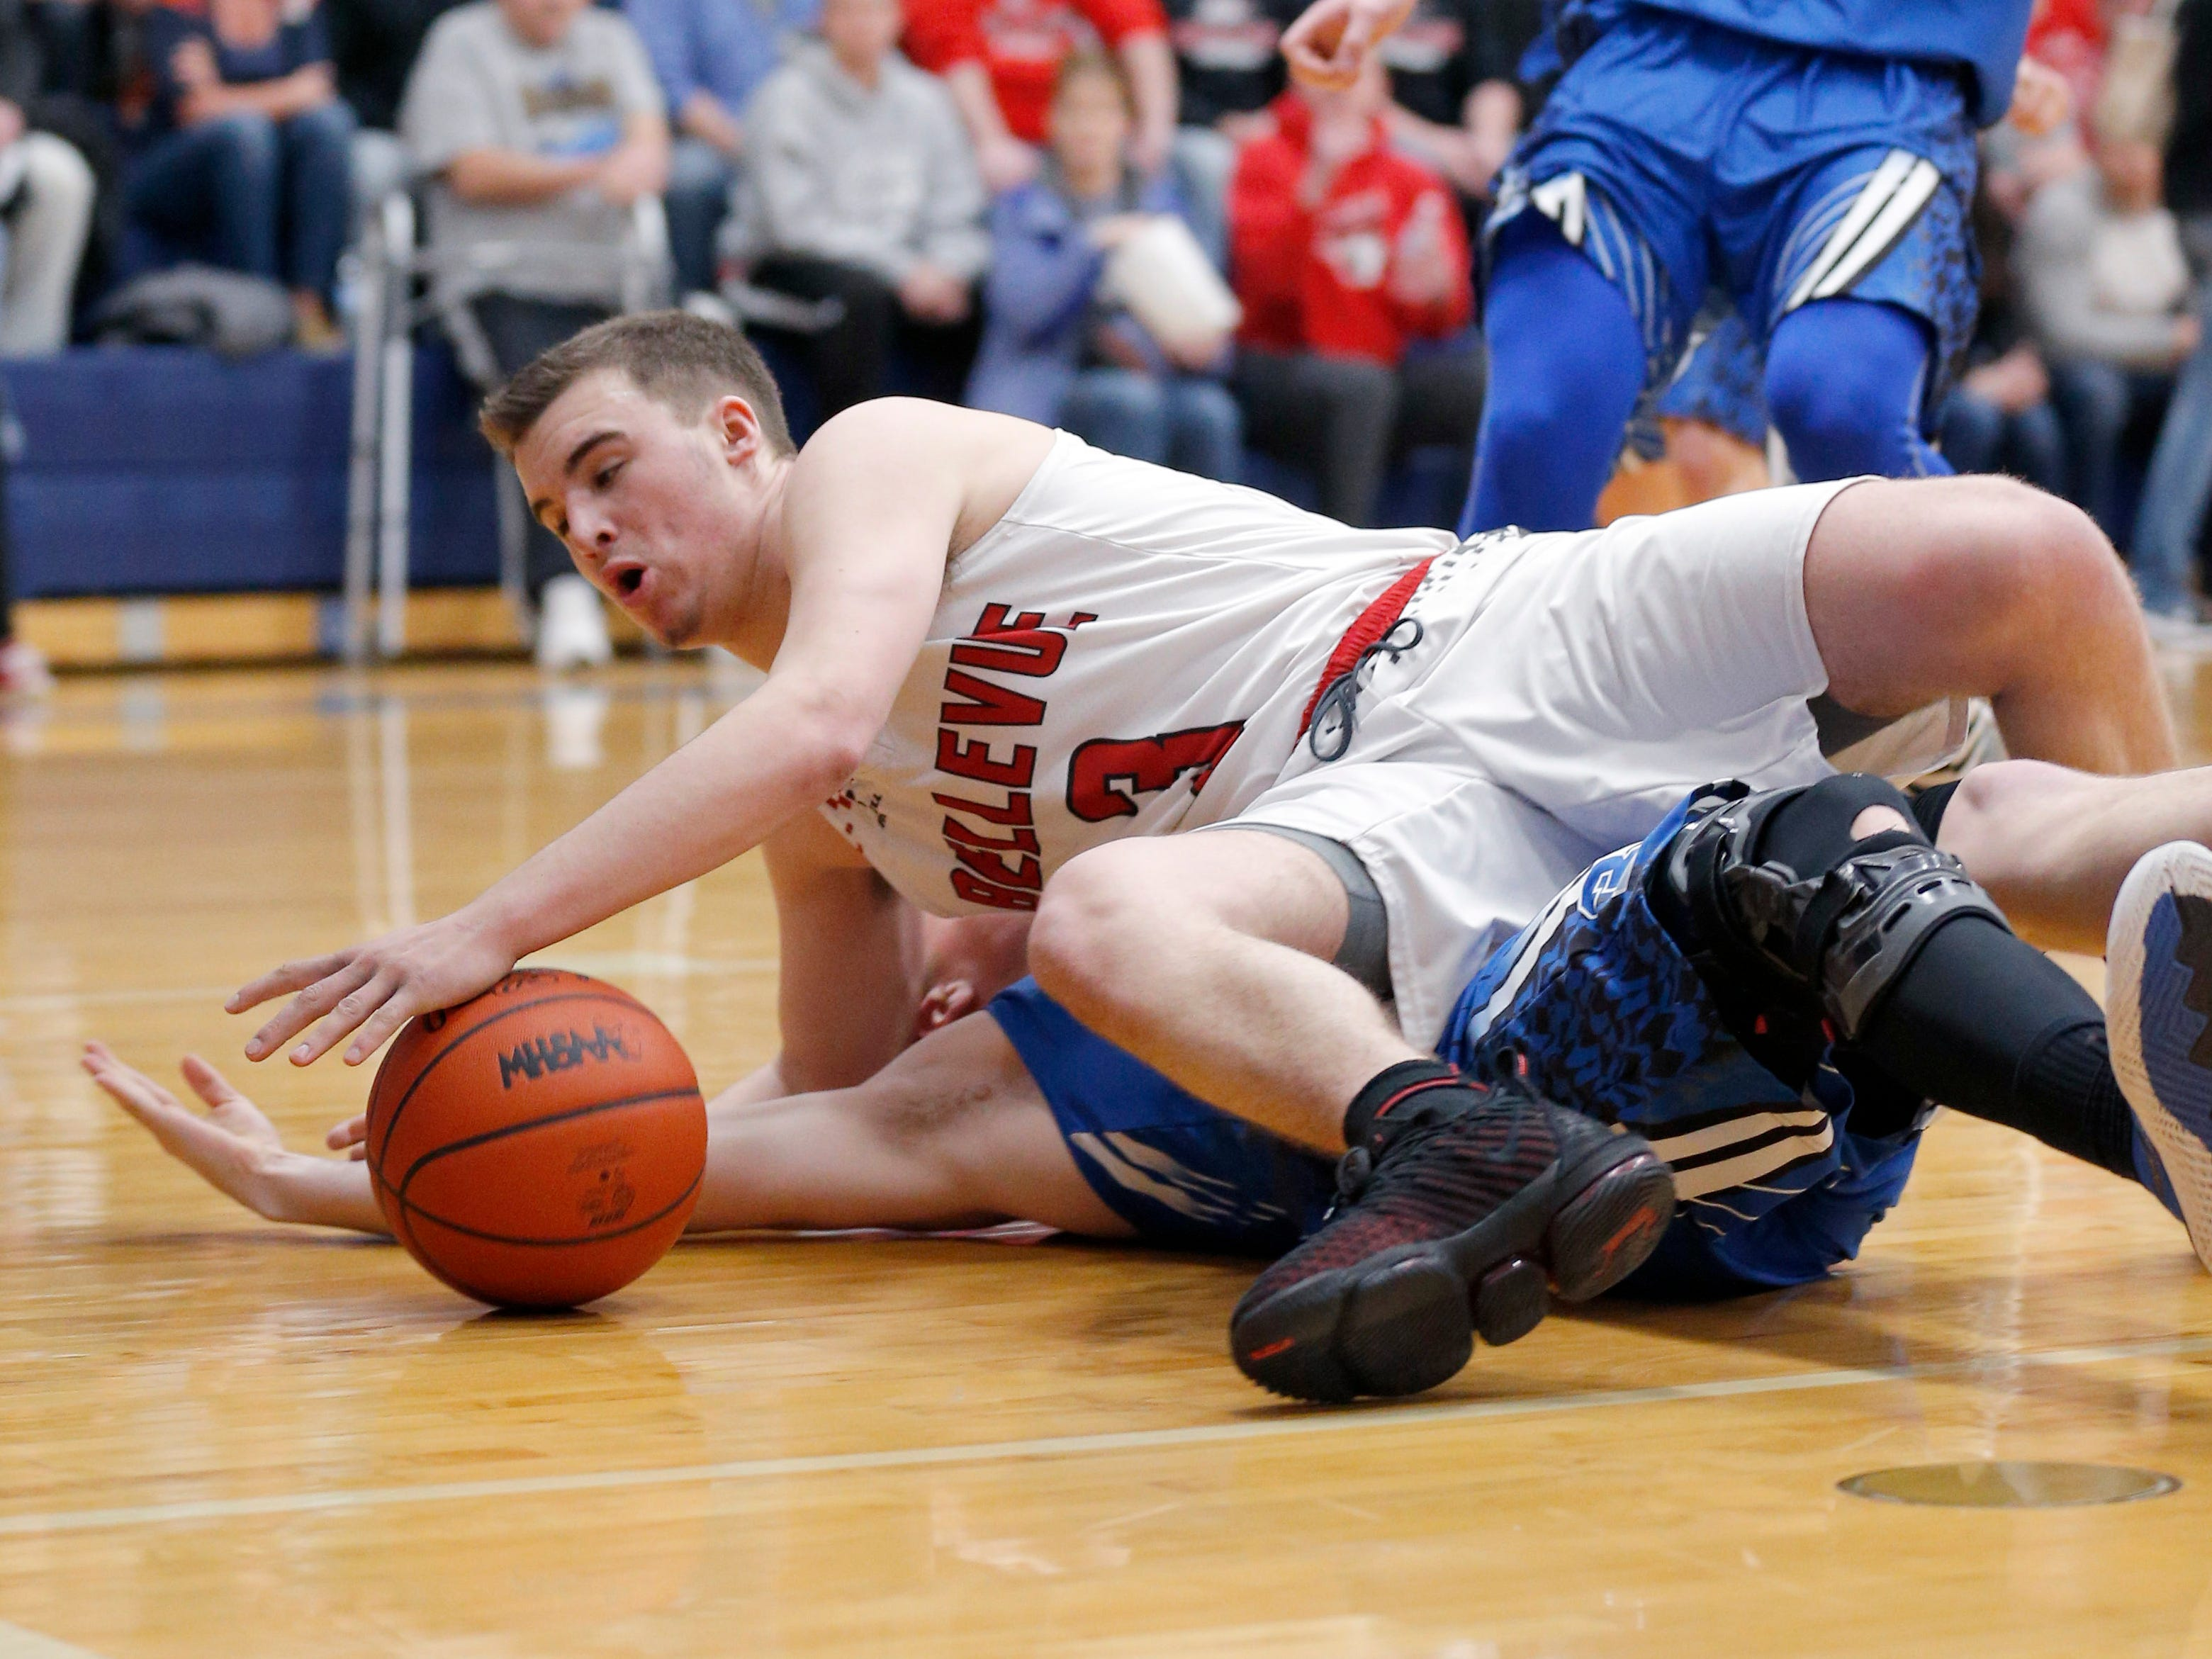 Bellevue's Gino Costello falls on top of Pittsford's Jesse Clement in their regional final, Thursday, March 7, 2019, in Fowler, Mich. Bellevue won 42-28.